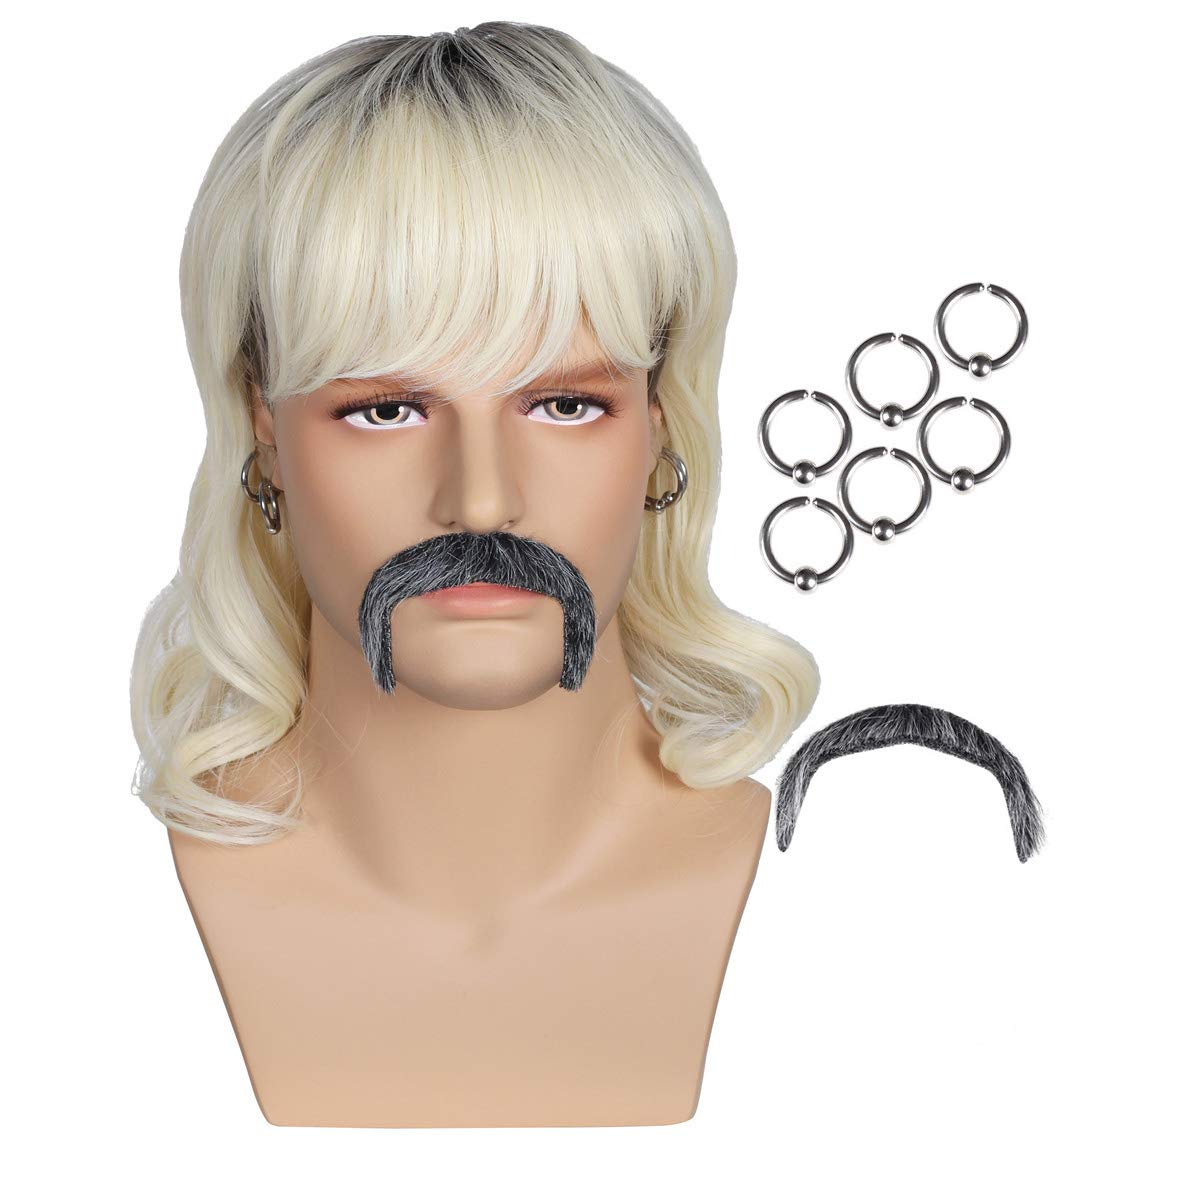 Dark Root Wig with 6 Earrings and Mustache for Men